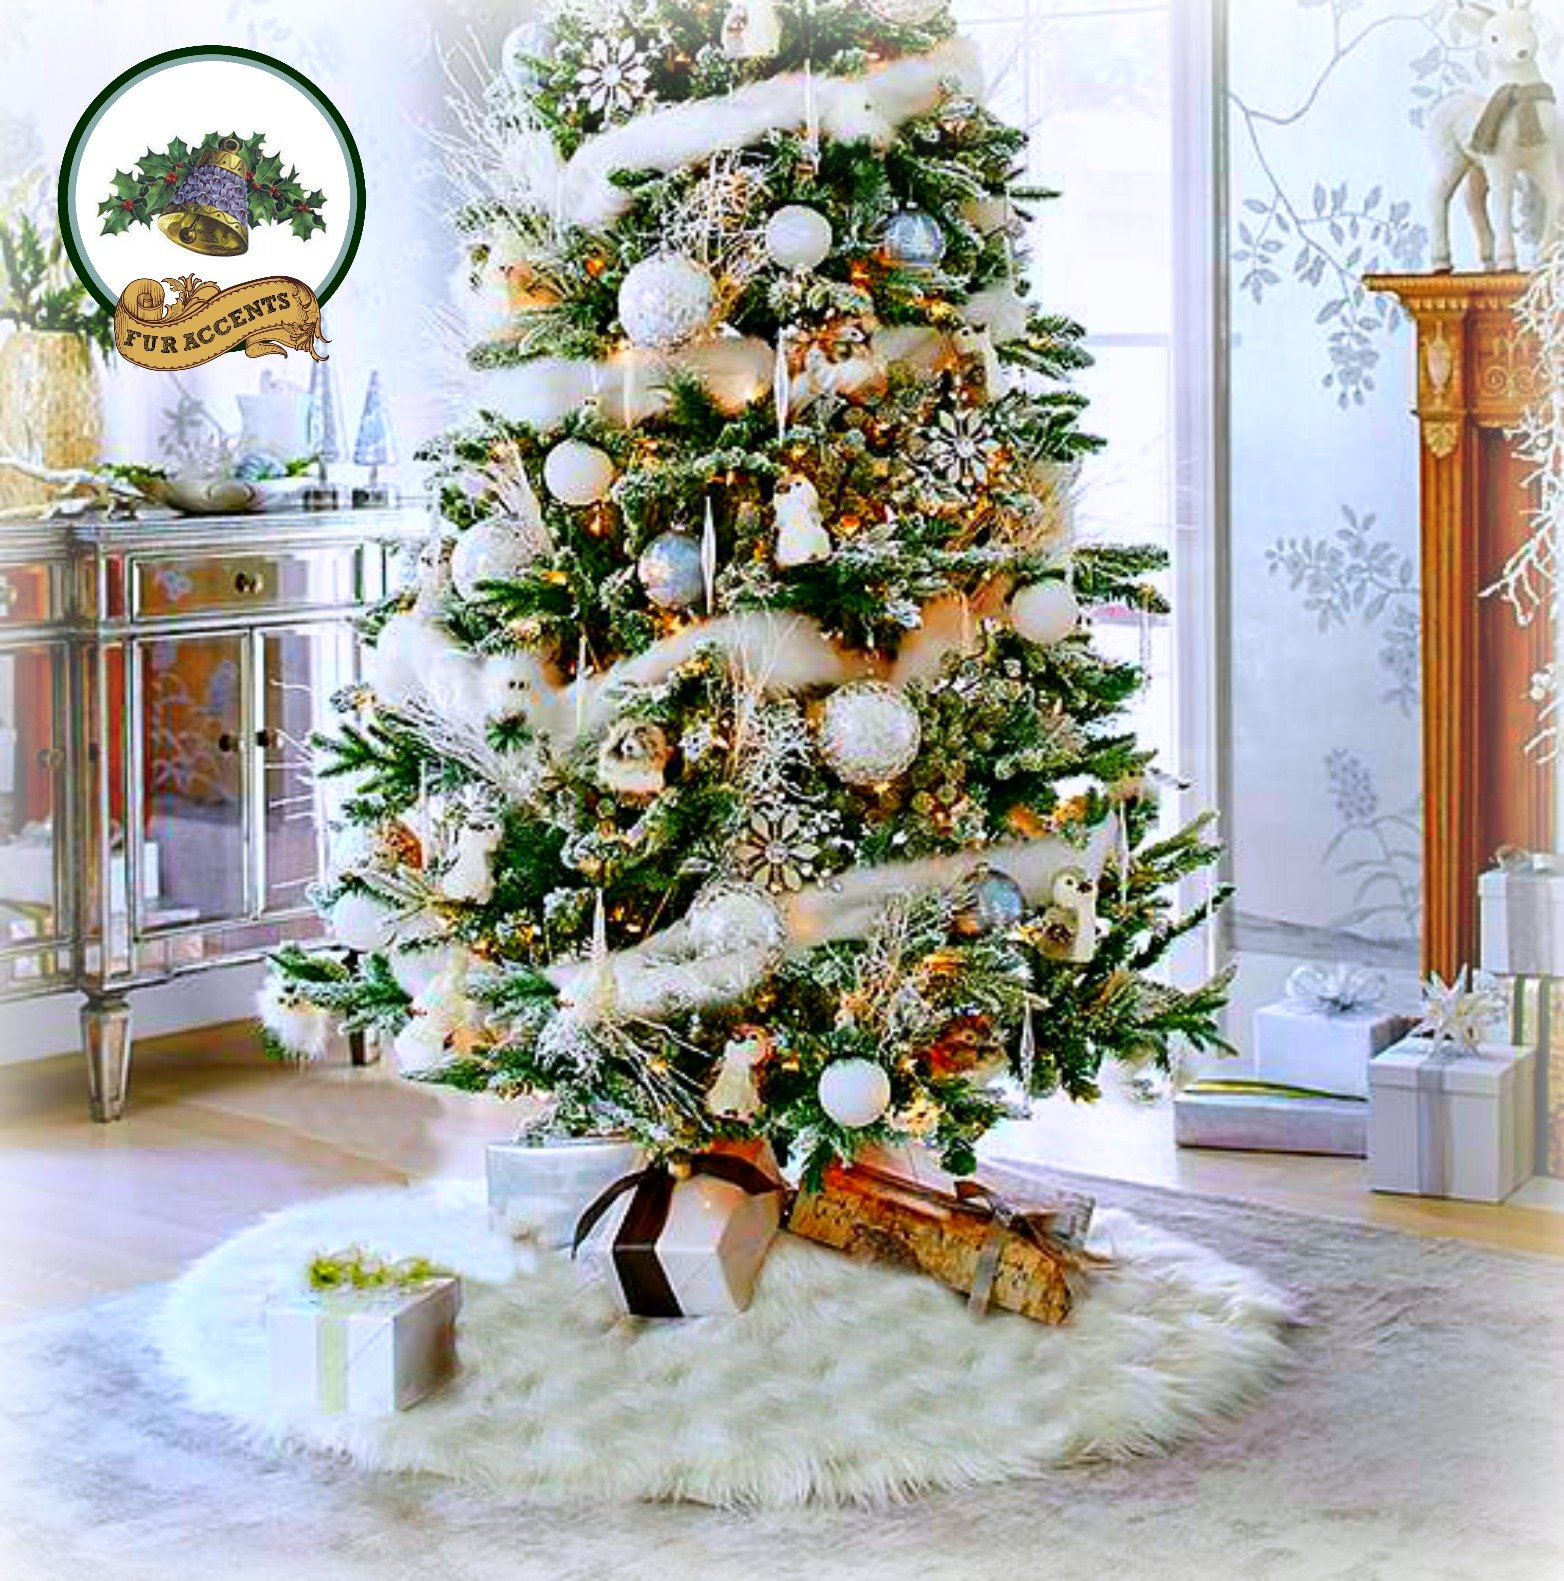 Classic Faux Fur Christmas Tree Skirt - Shaggy Shag Faux Sheepskin Round - White or Off White by Fur Accents - USA (6' Round, White) by Fur Accents (Image #1)